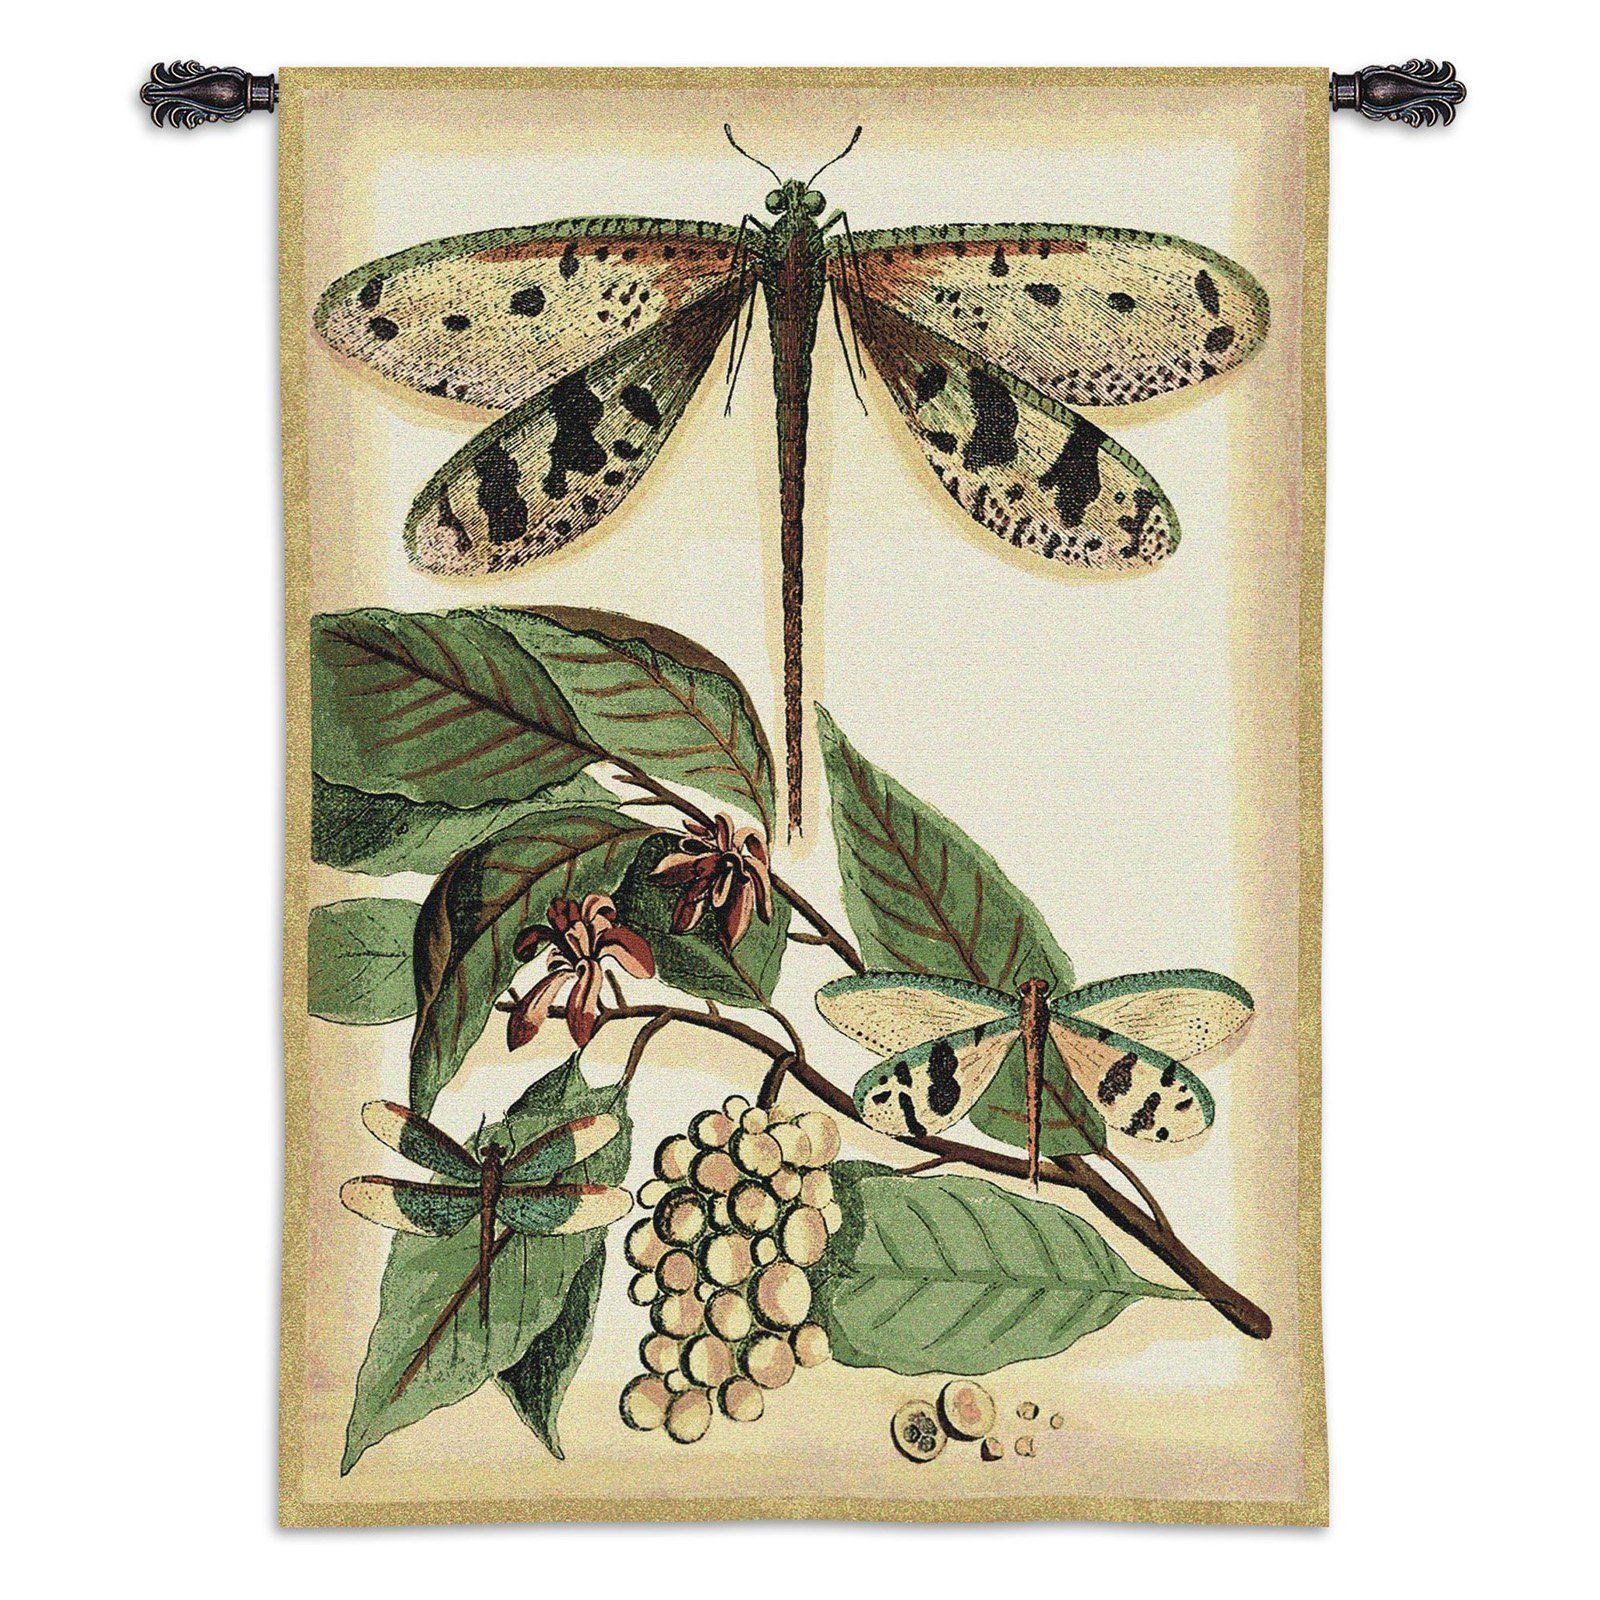 Fine Art Tapestries Lt Whimsical Dragonfly I Wall Tapestry - 3120-WH